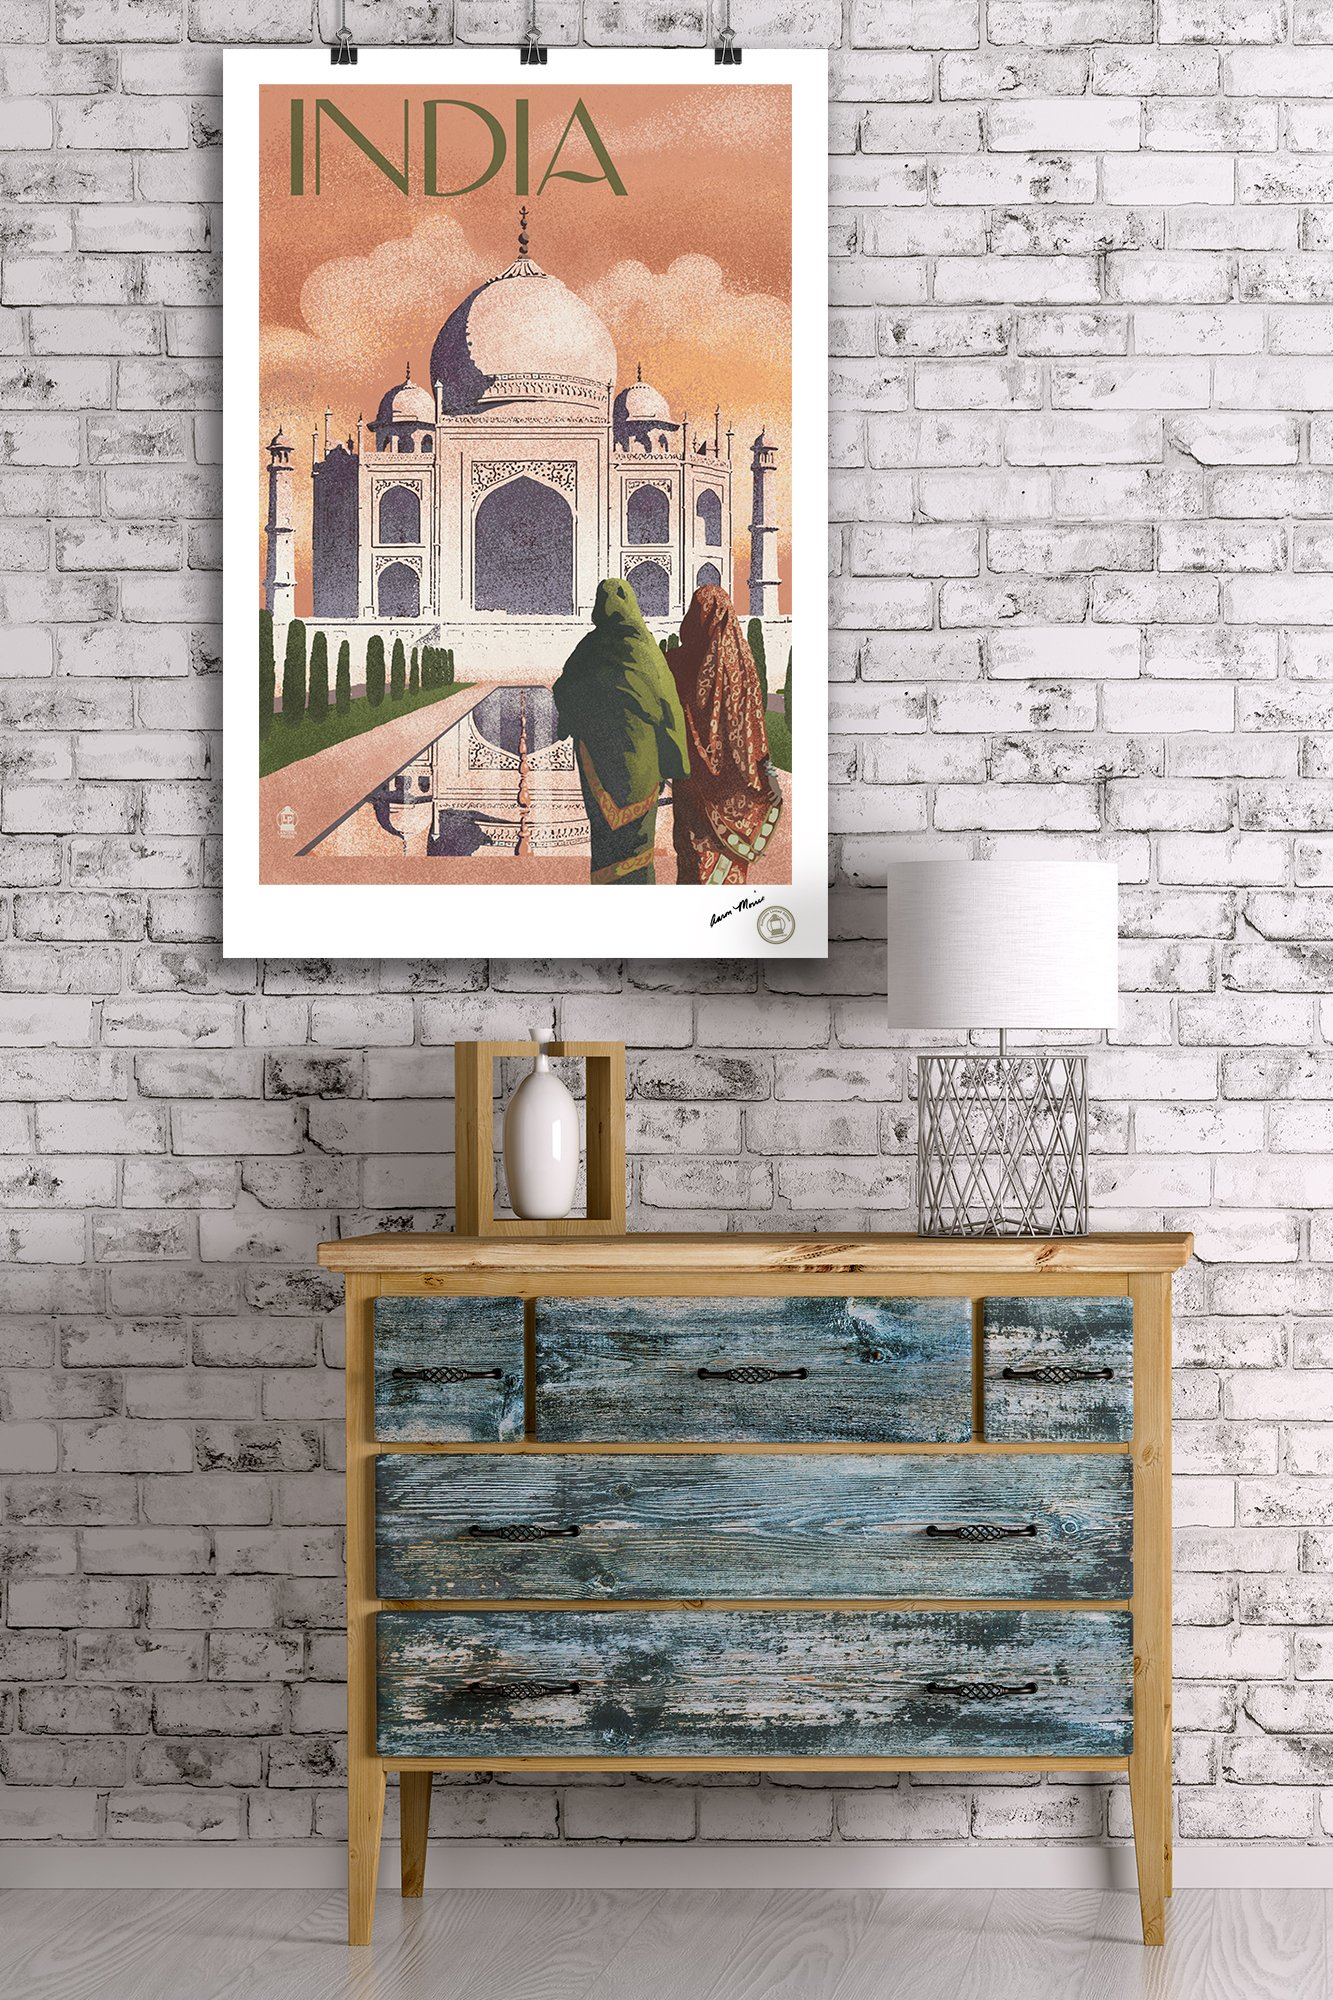 Taj Mahal, India - Lithograph Style (24x36 SIGNED Print Master Giclee Print w/ Certificate of Authenticity - Wall Decor Travel Poster) by Lantern Press (Image #2)